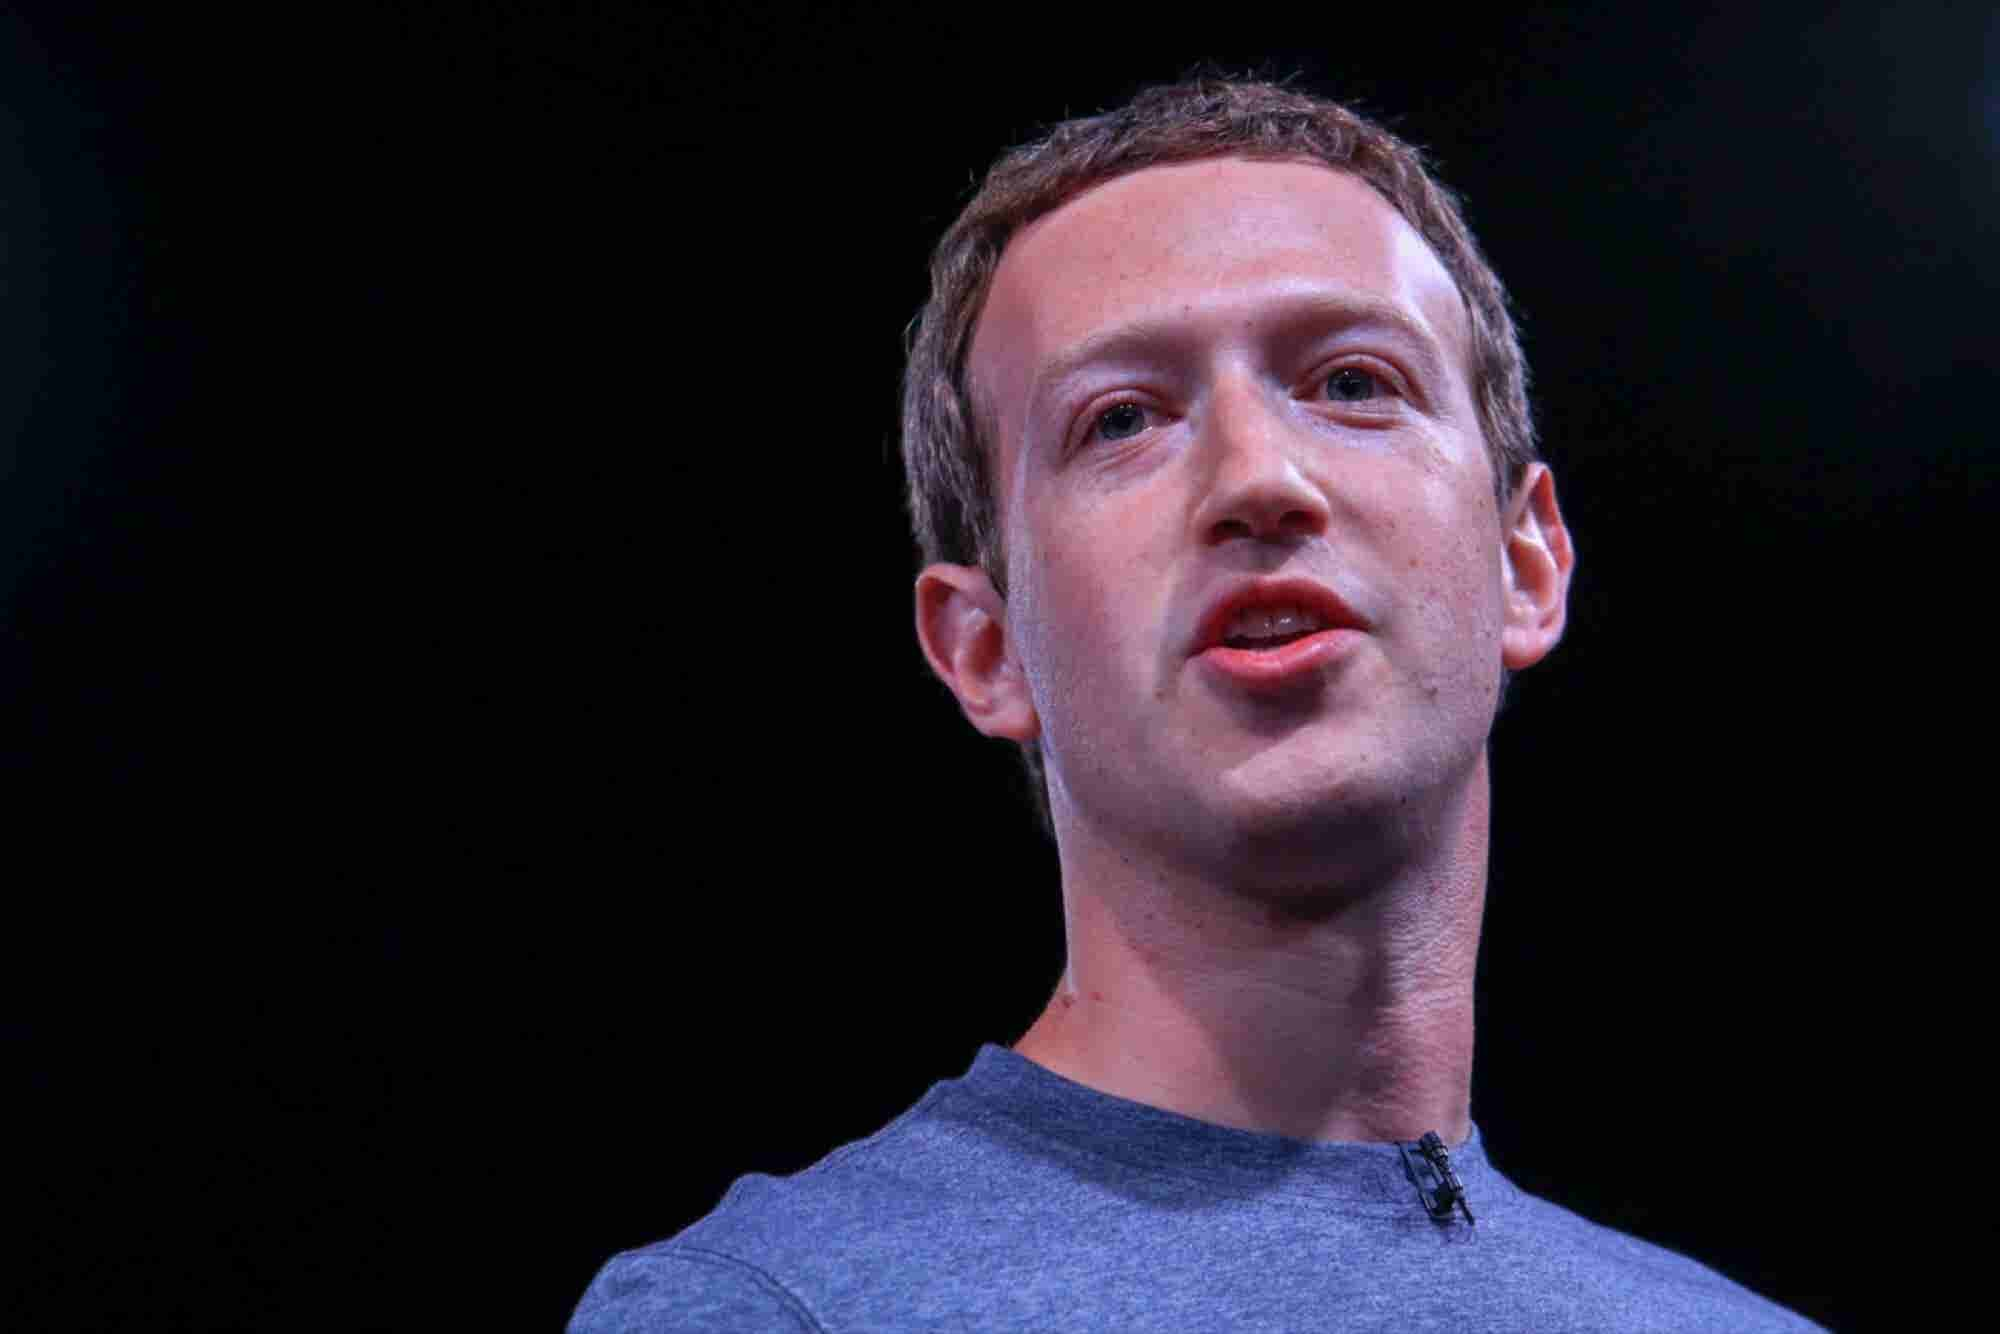 From Mark Zuckerberg to Richard Branson: Here Are 5 Amazing Leadership Lessons From Famous 'Dadpreneurs'